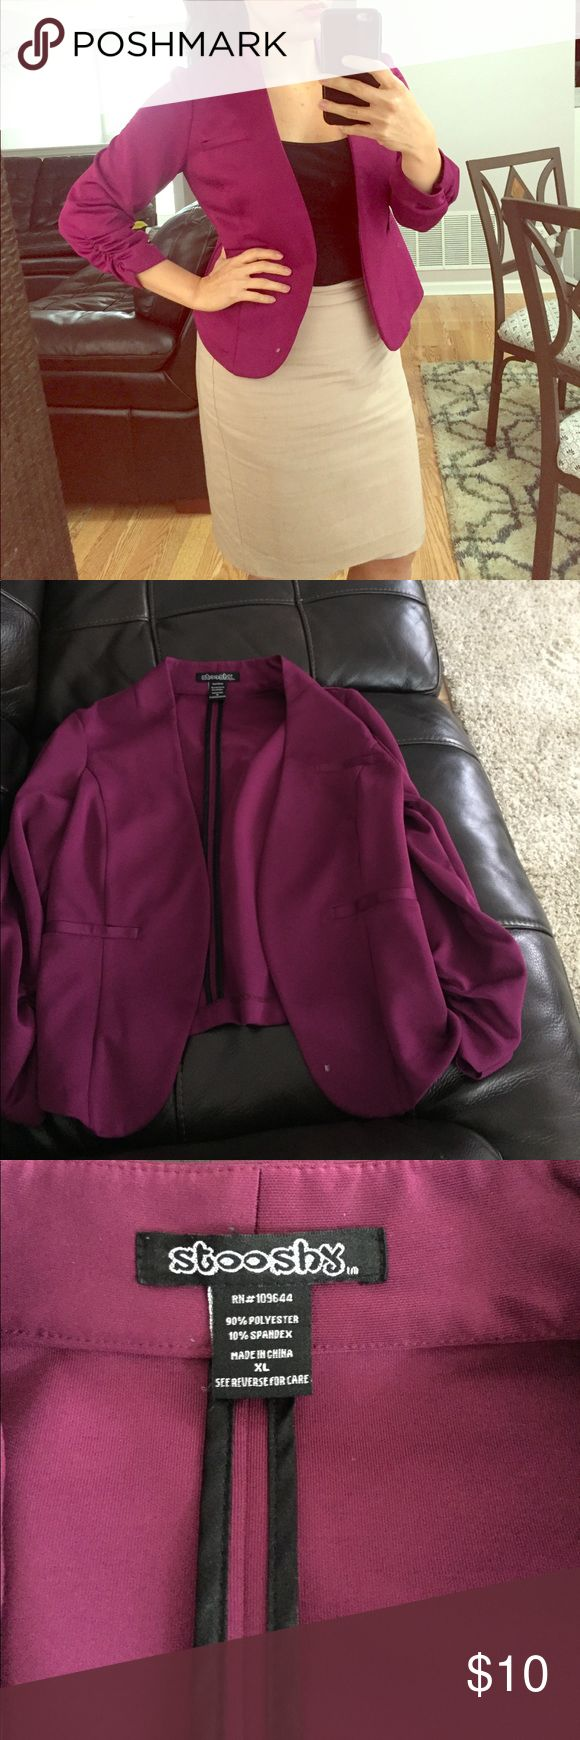 Purple blazer Runs small. XL Blazer. Beautiful vibrant purple perfect for business attire and paired with some nice skinny jeans Stooshy Sweaters Cardigans